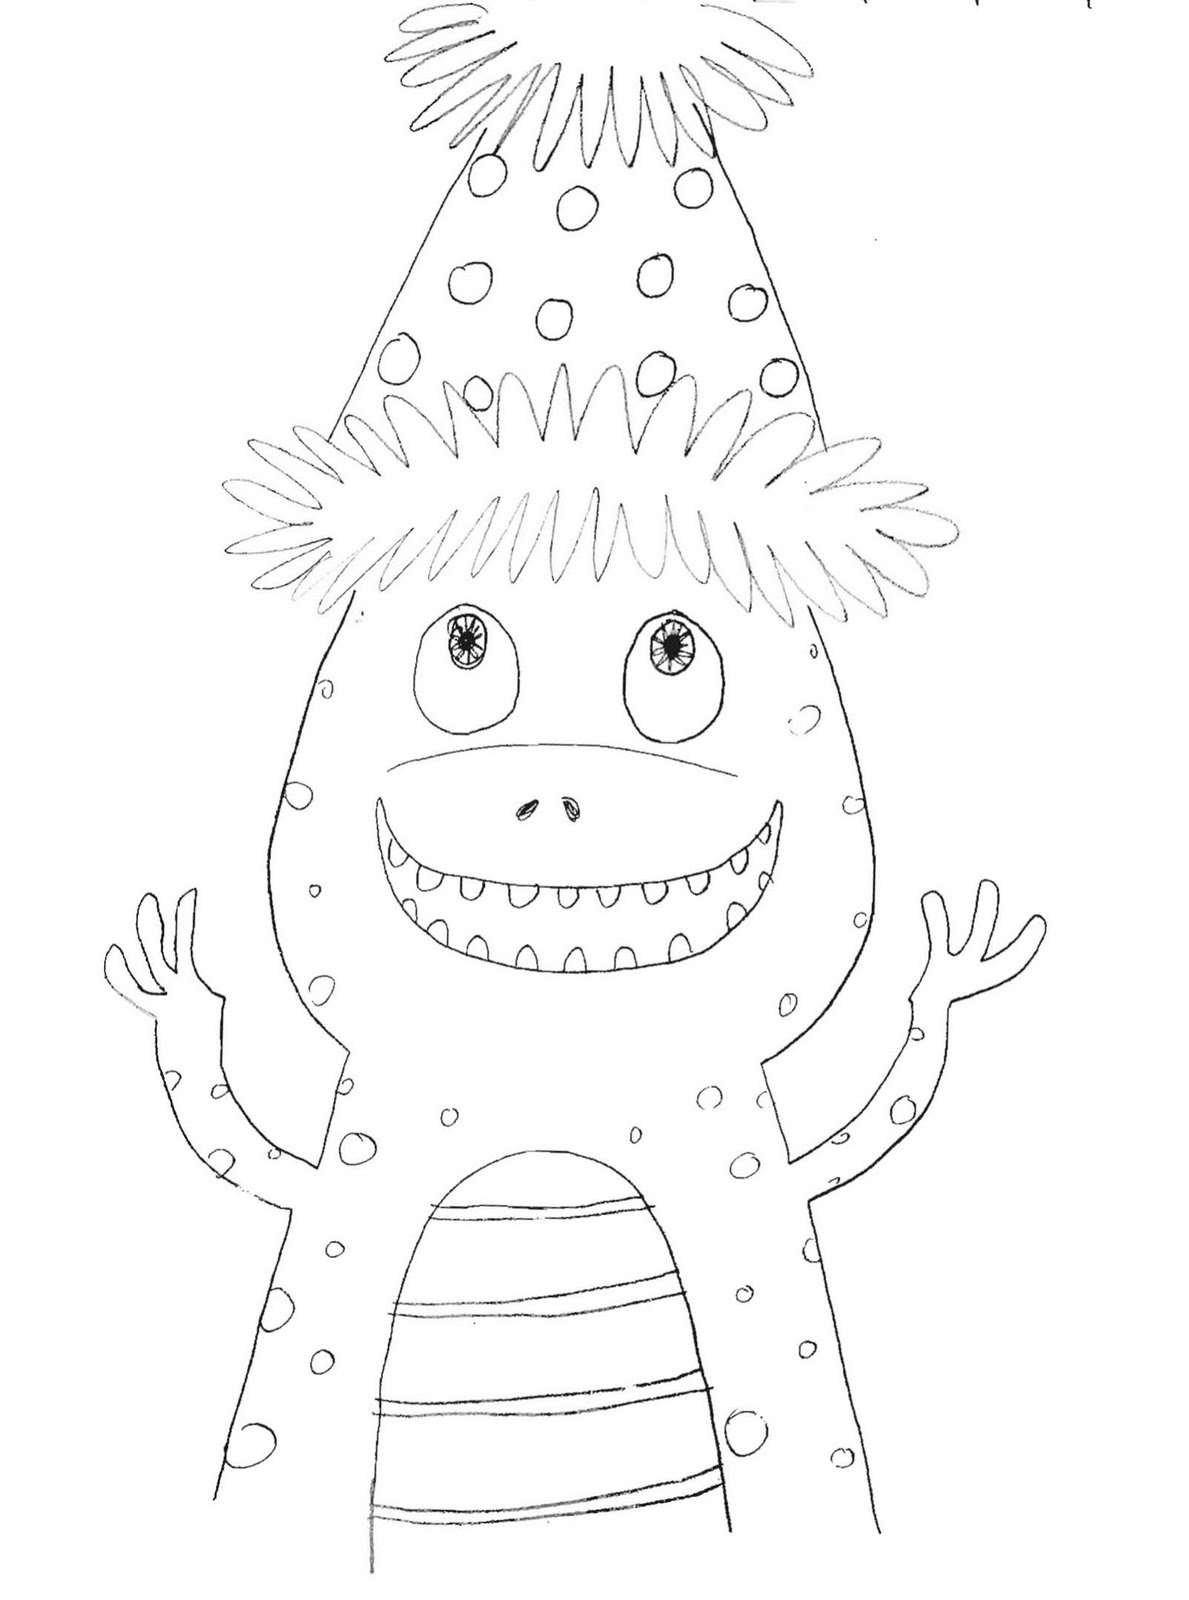 Eric Carle Coloring Pages. Great Senses Coloring Pages With Eric ...